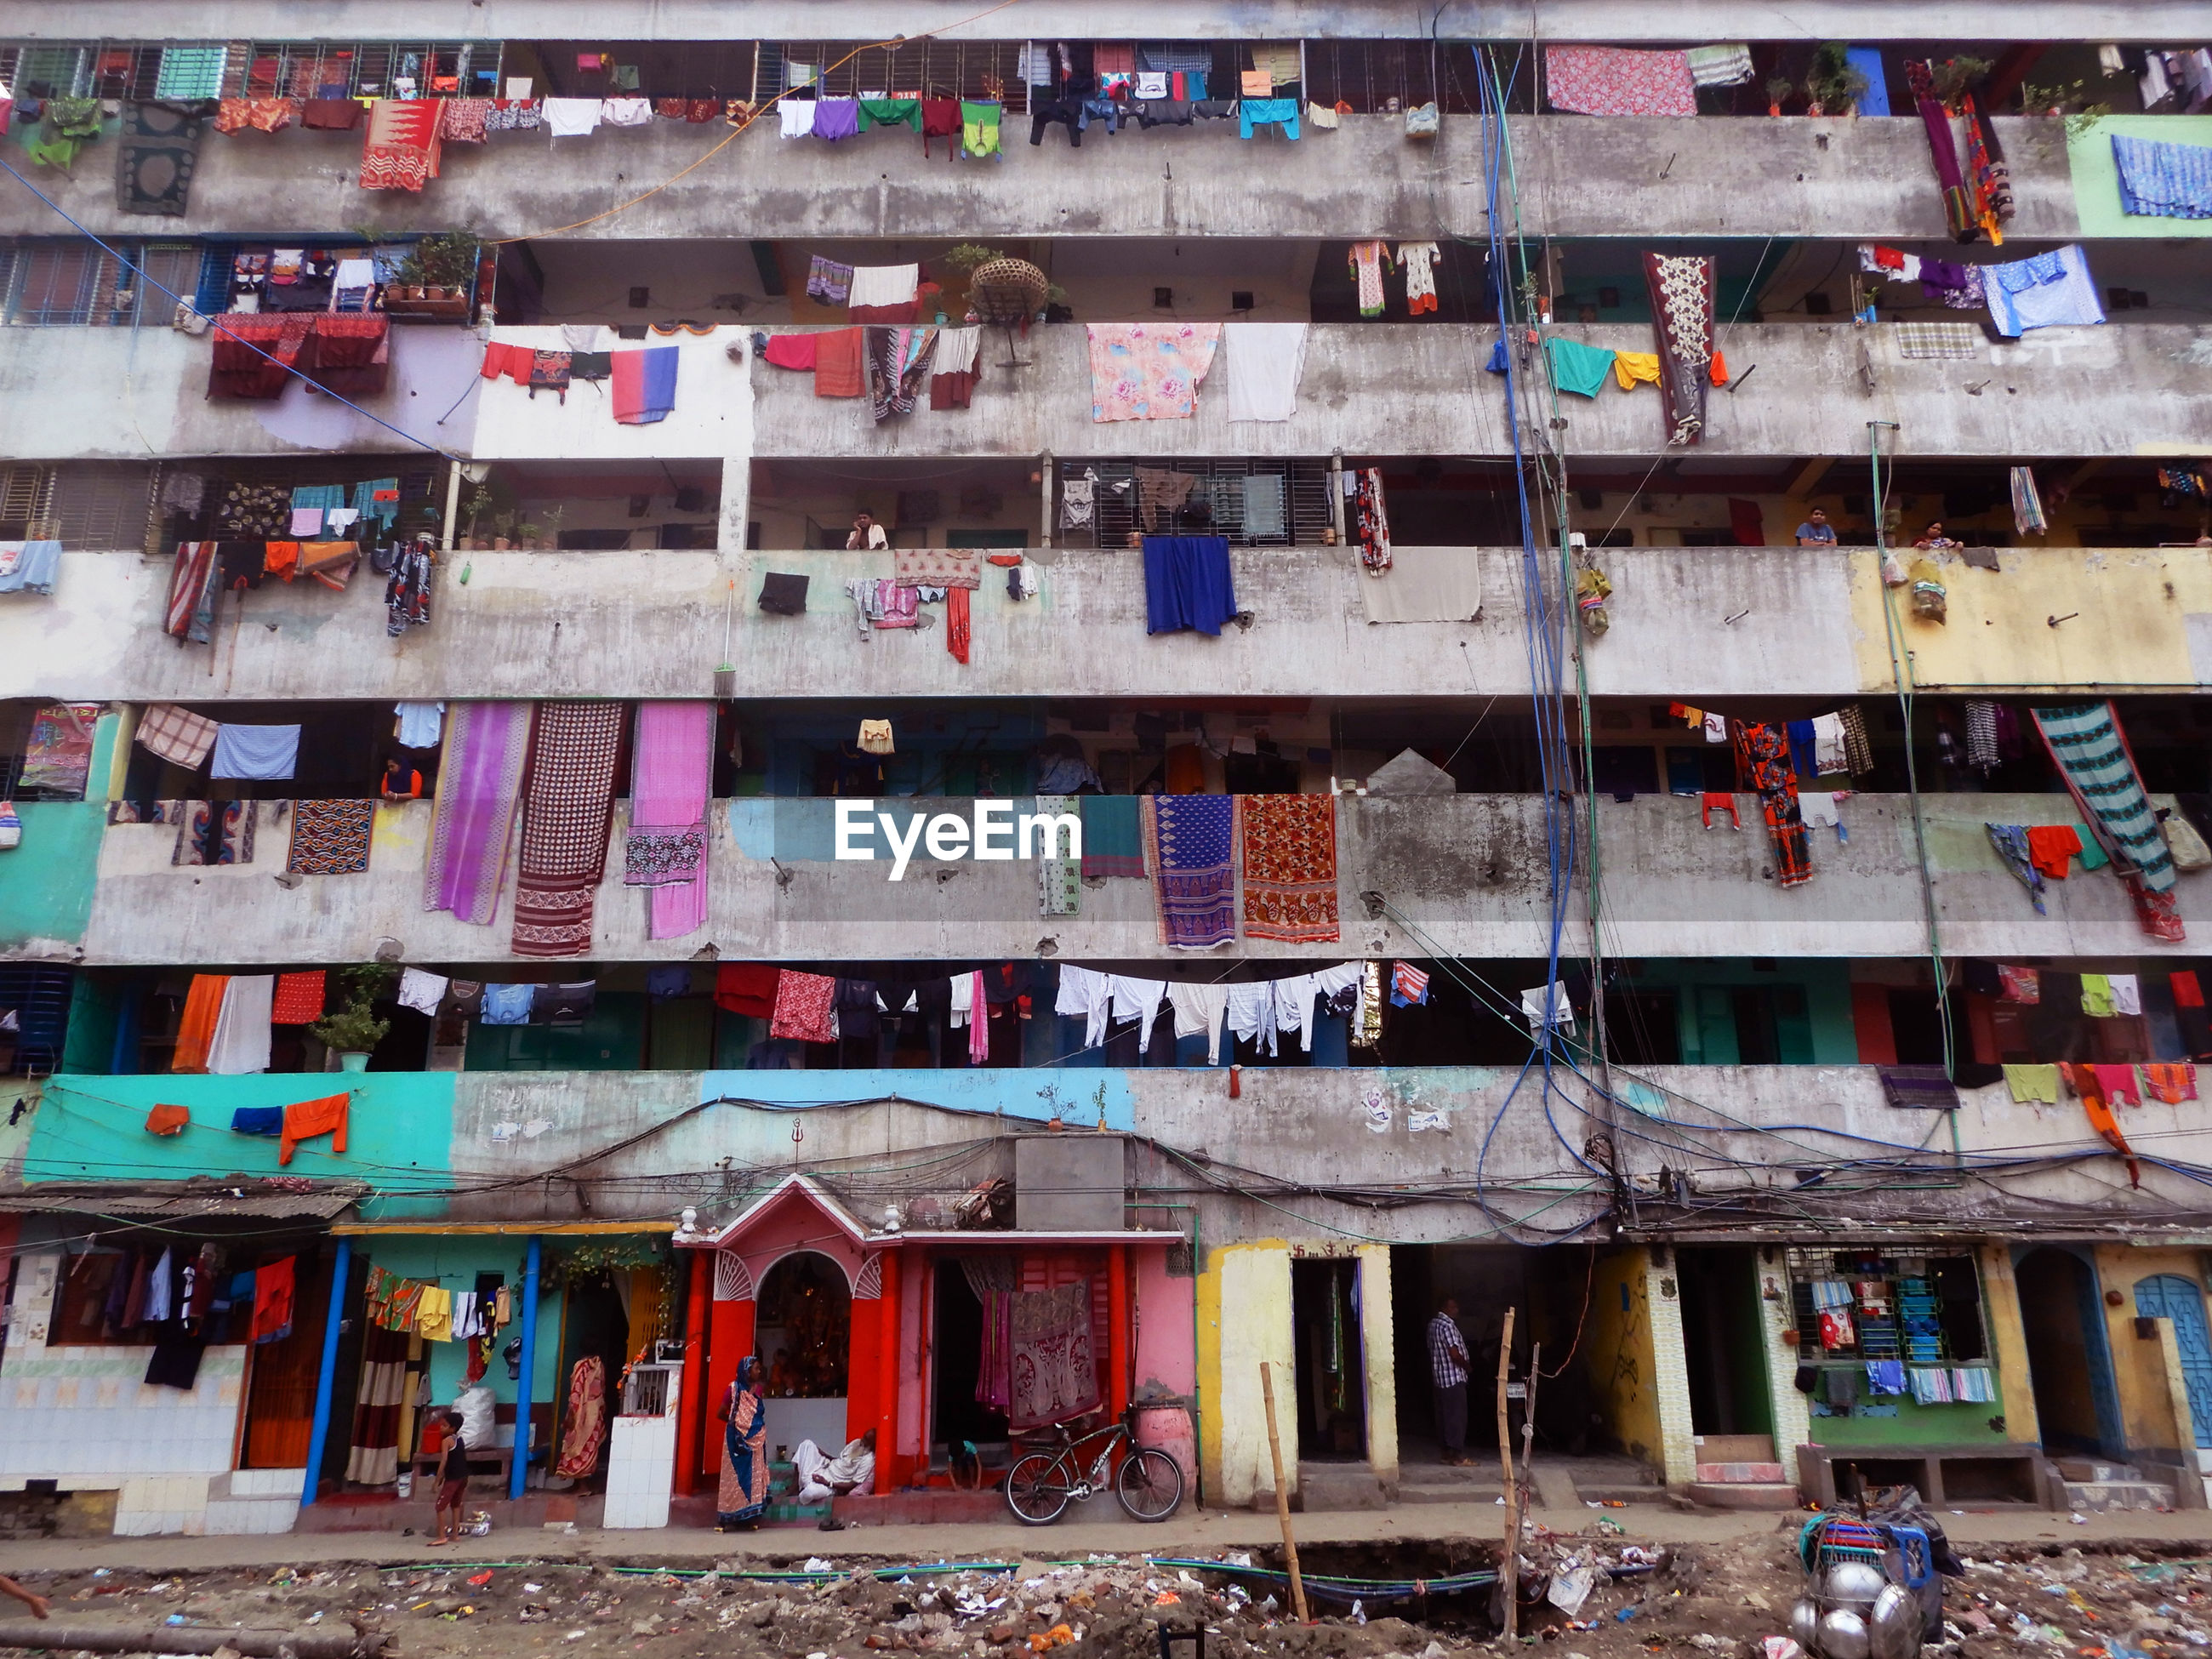 Low angle view of laundry hanging in balcony of building